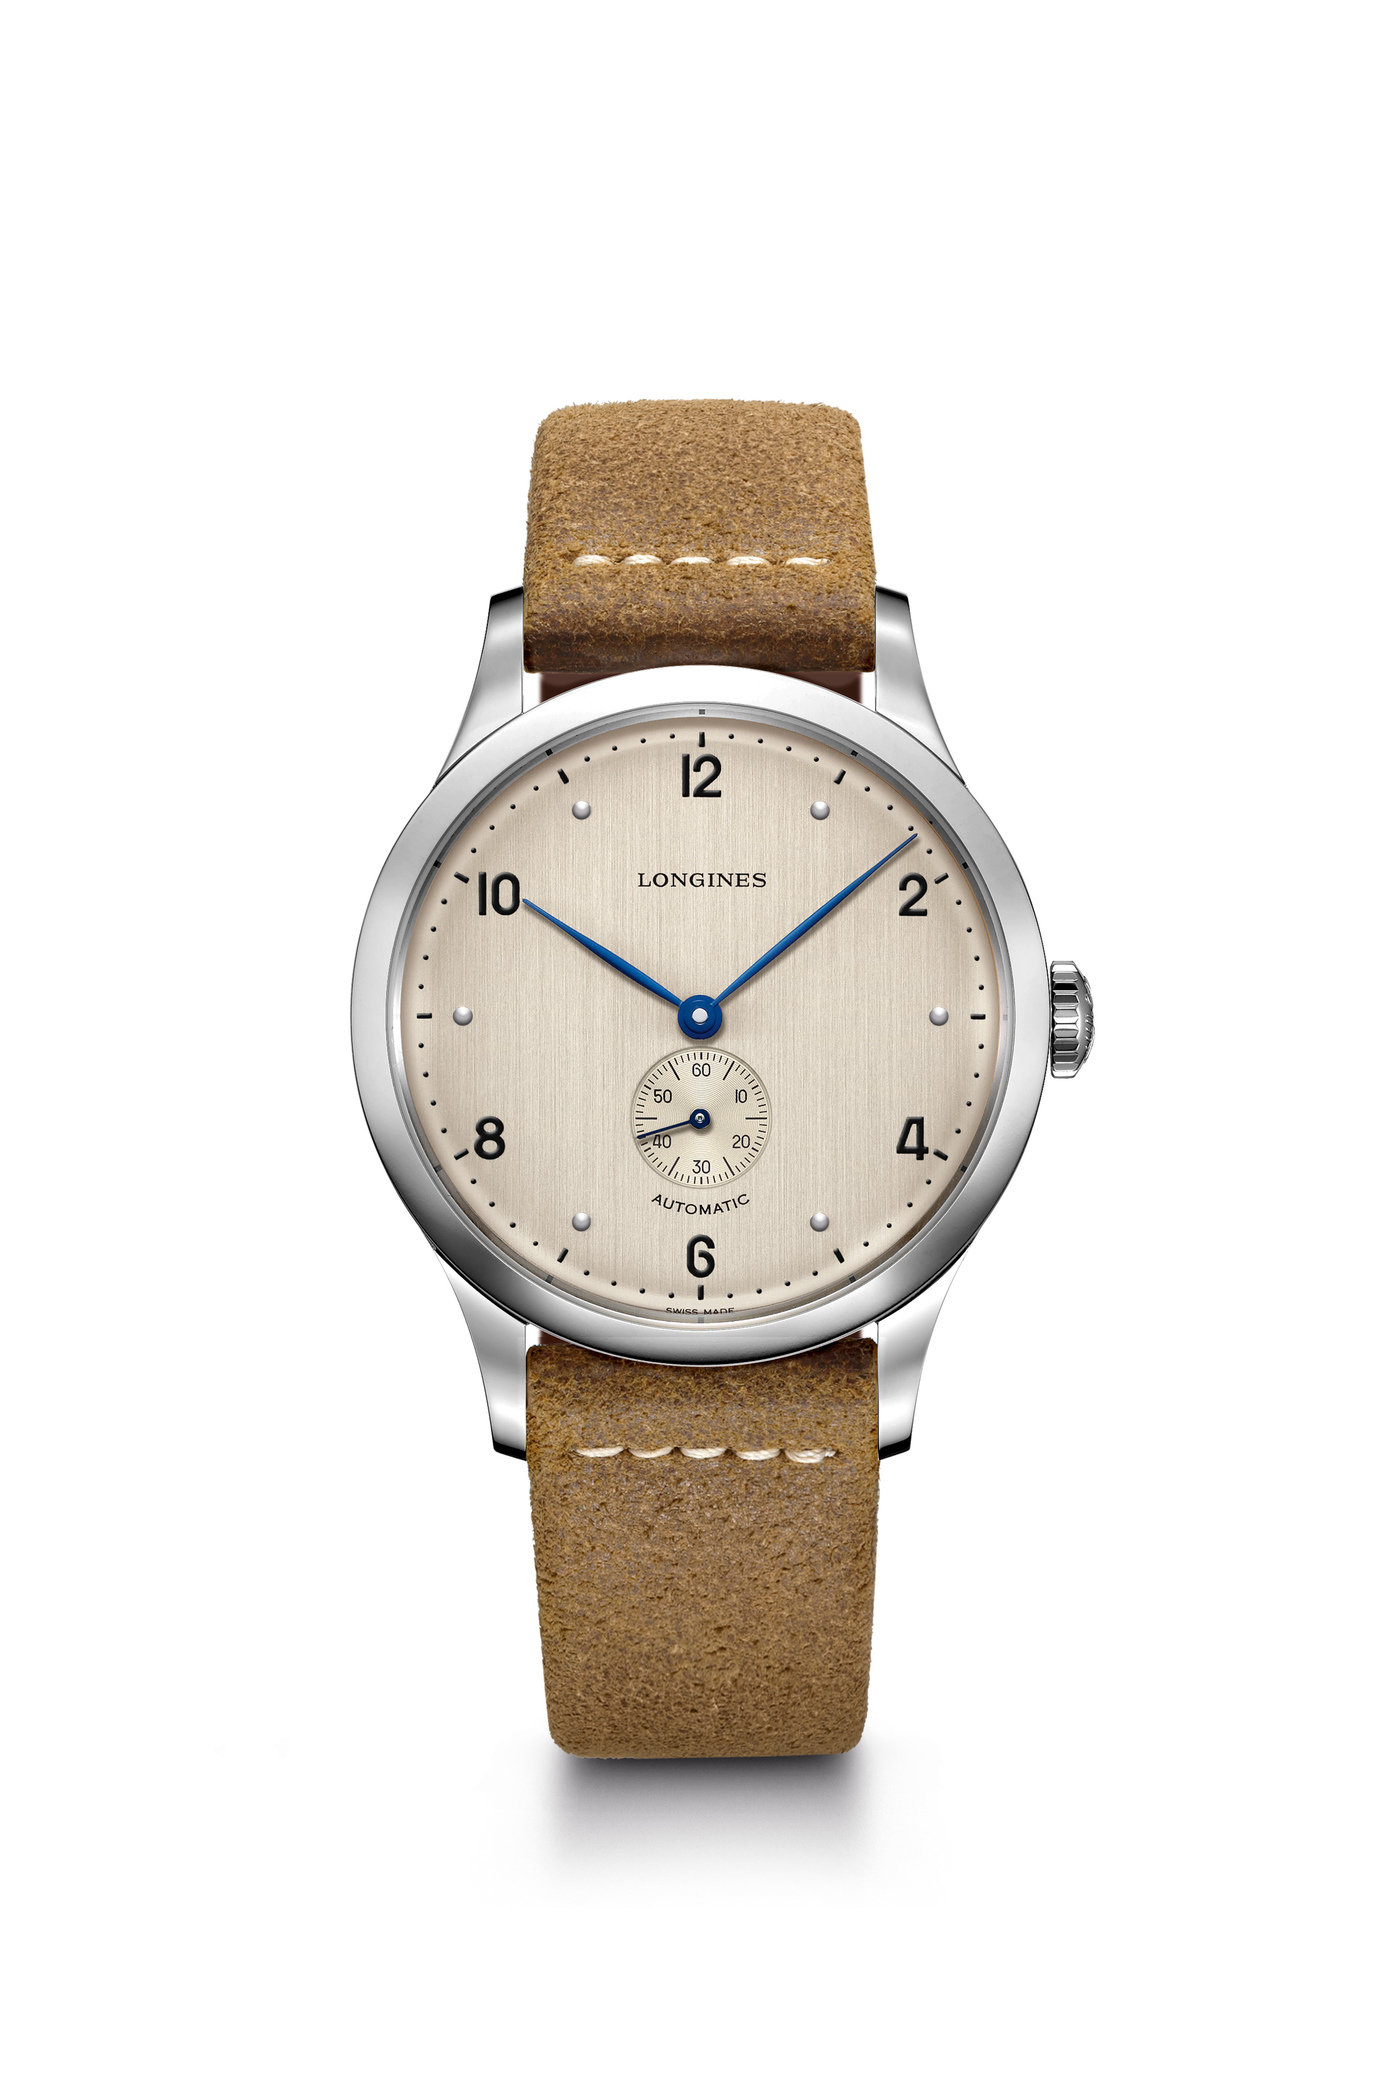 Longines The Longines Heritage 1945 Watch 1